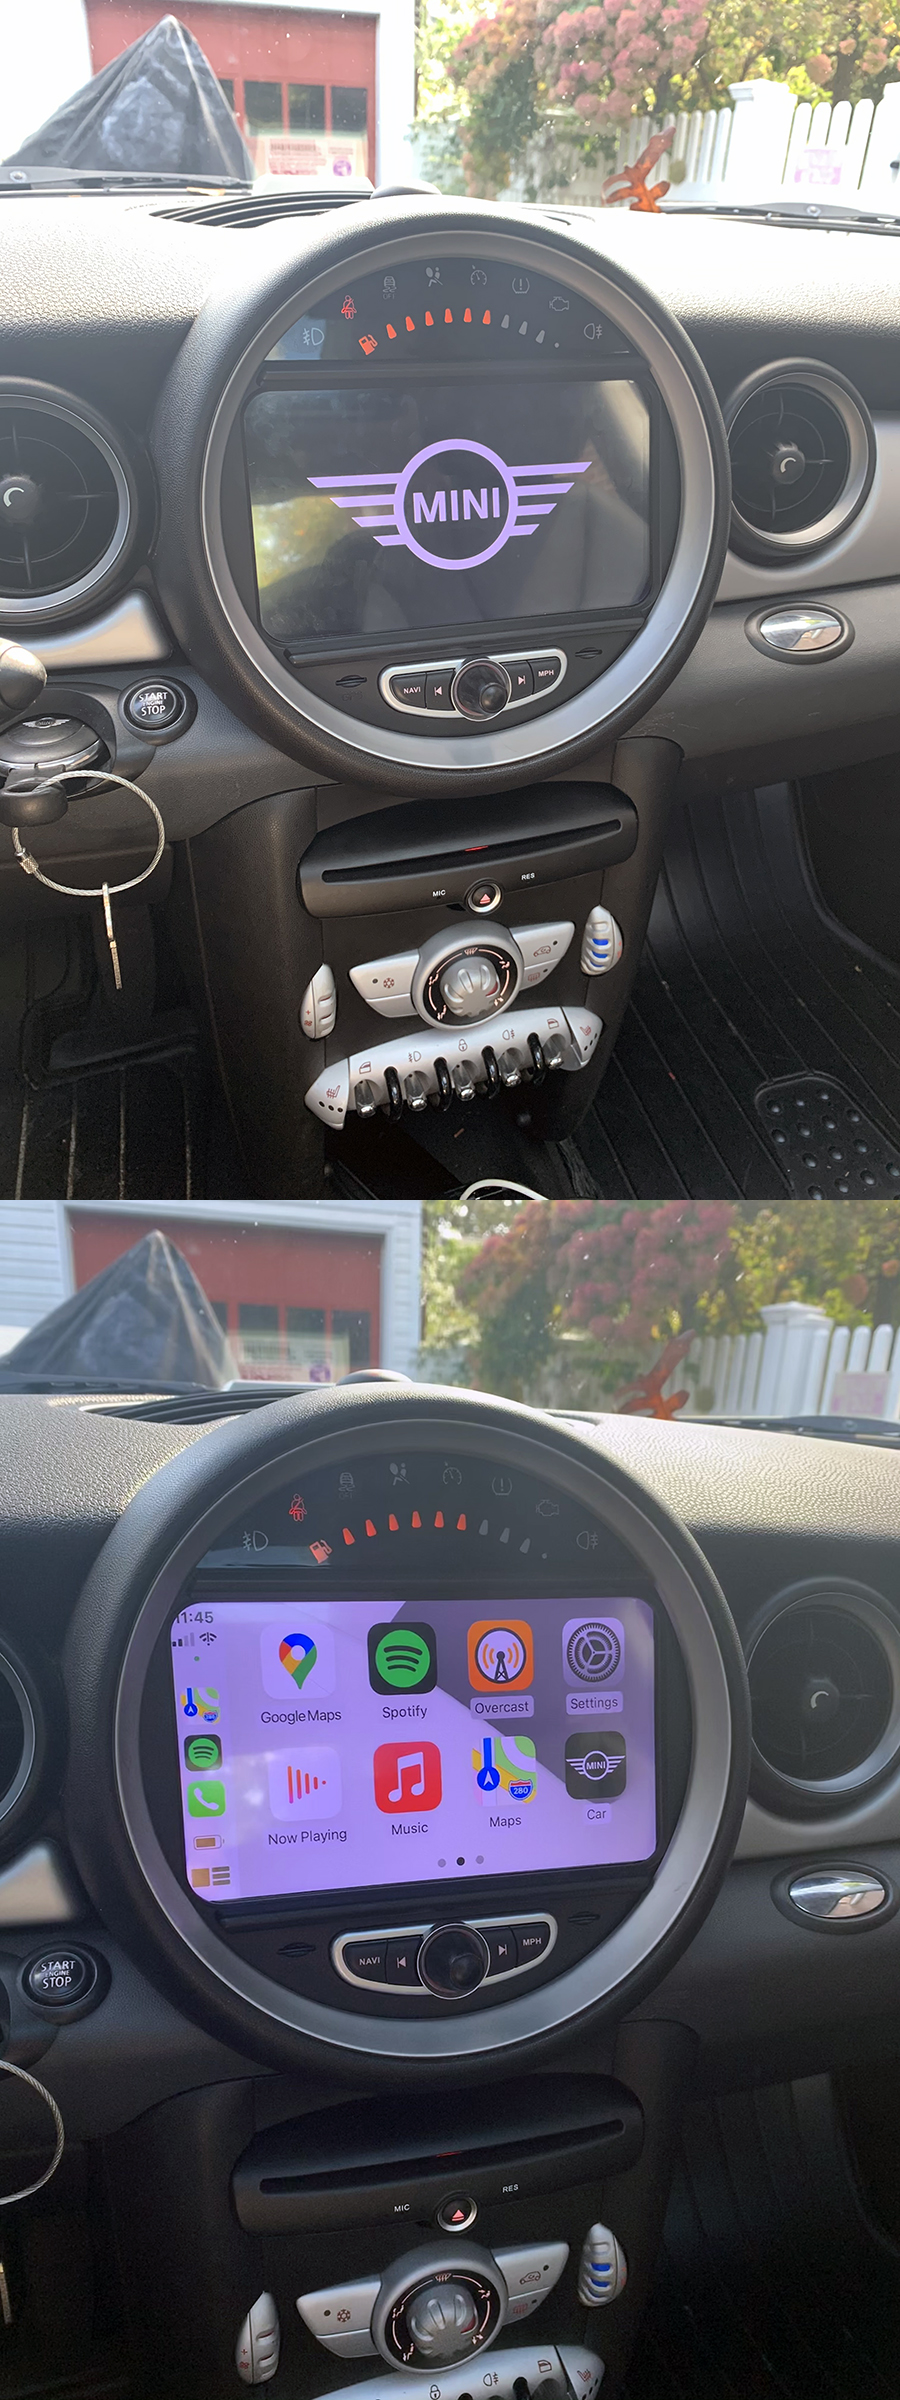 mini cooper 2006-2013 navigation head unit  carnaviplayer.com